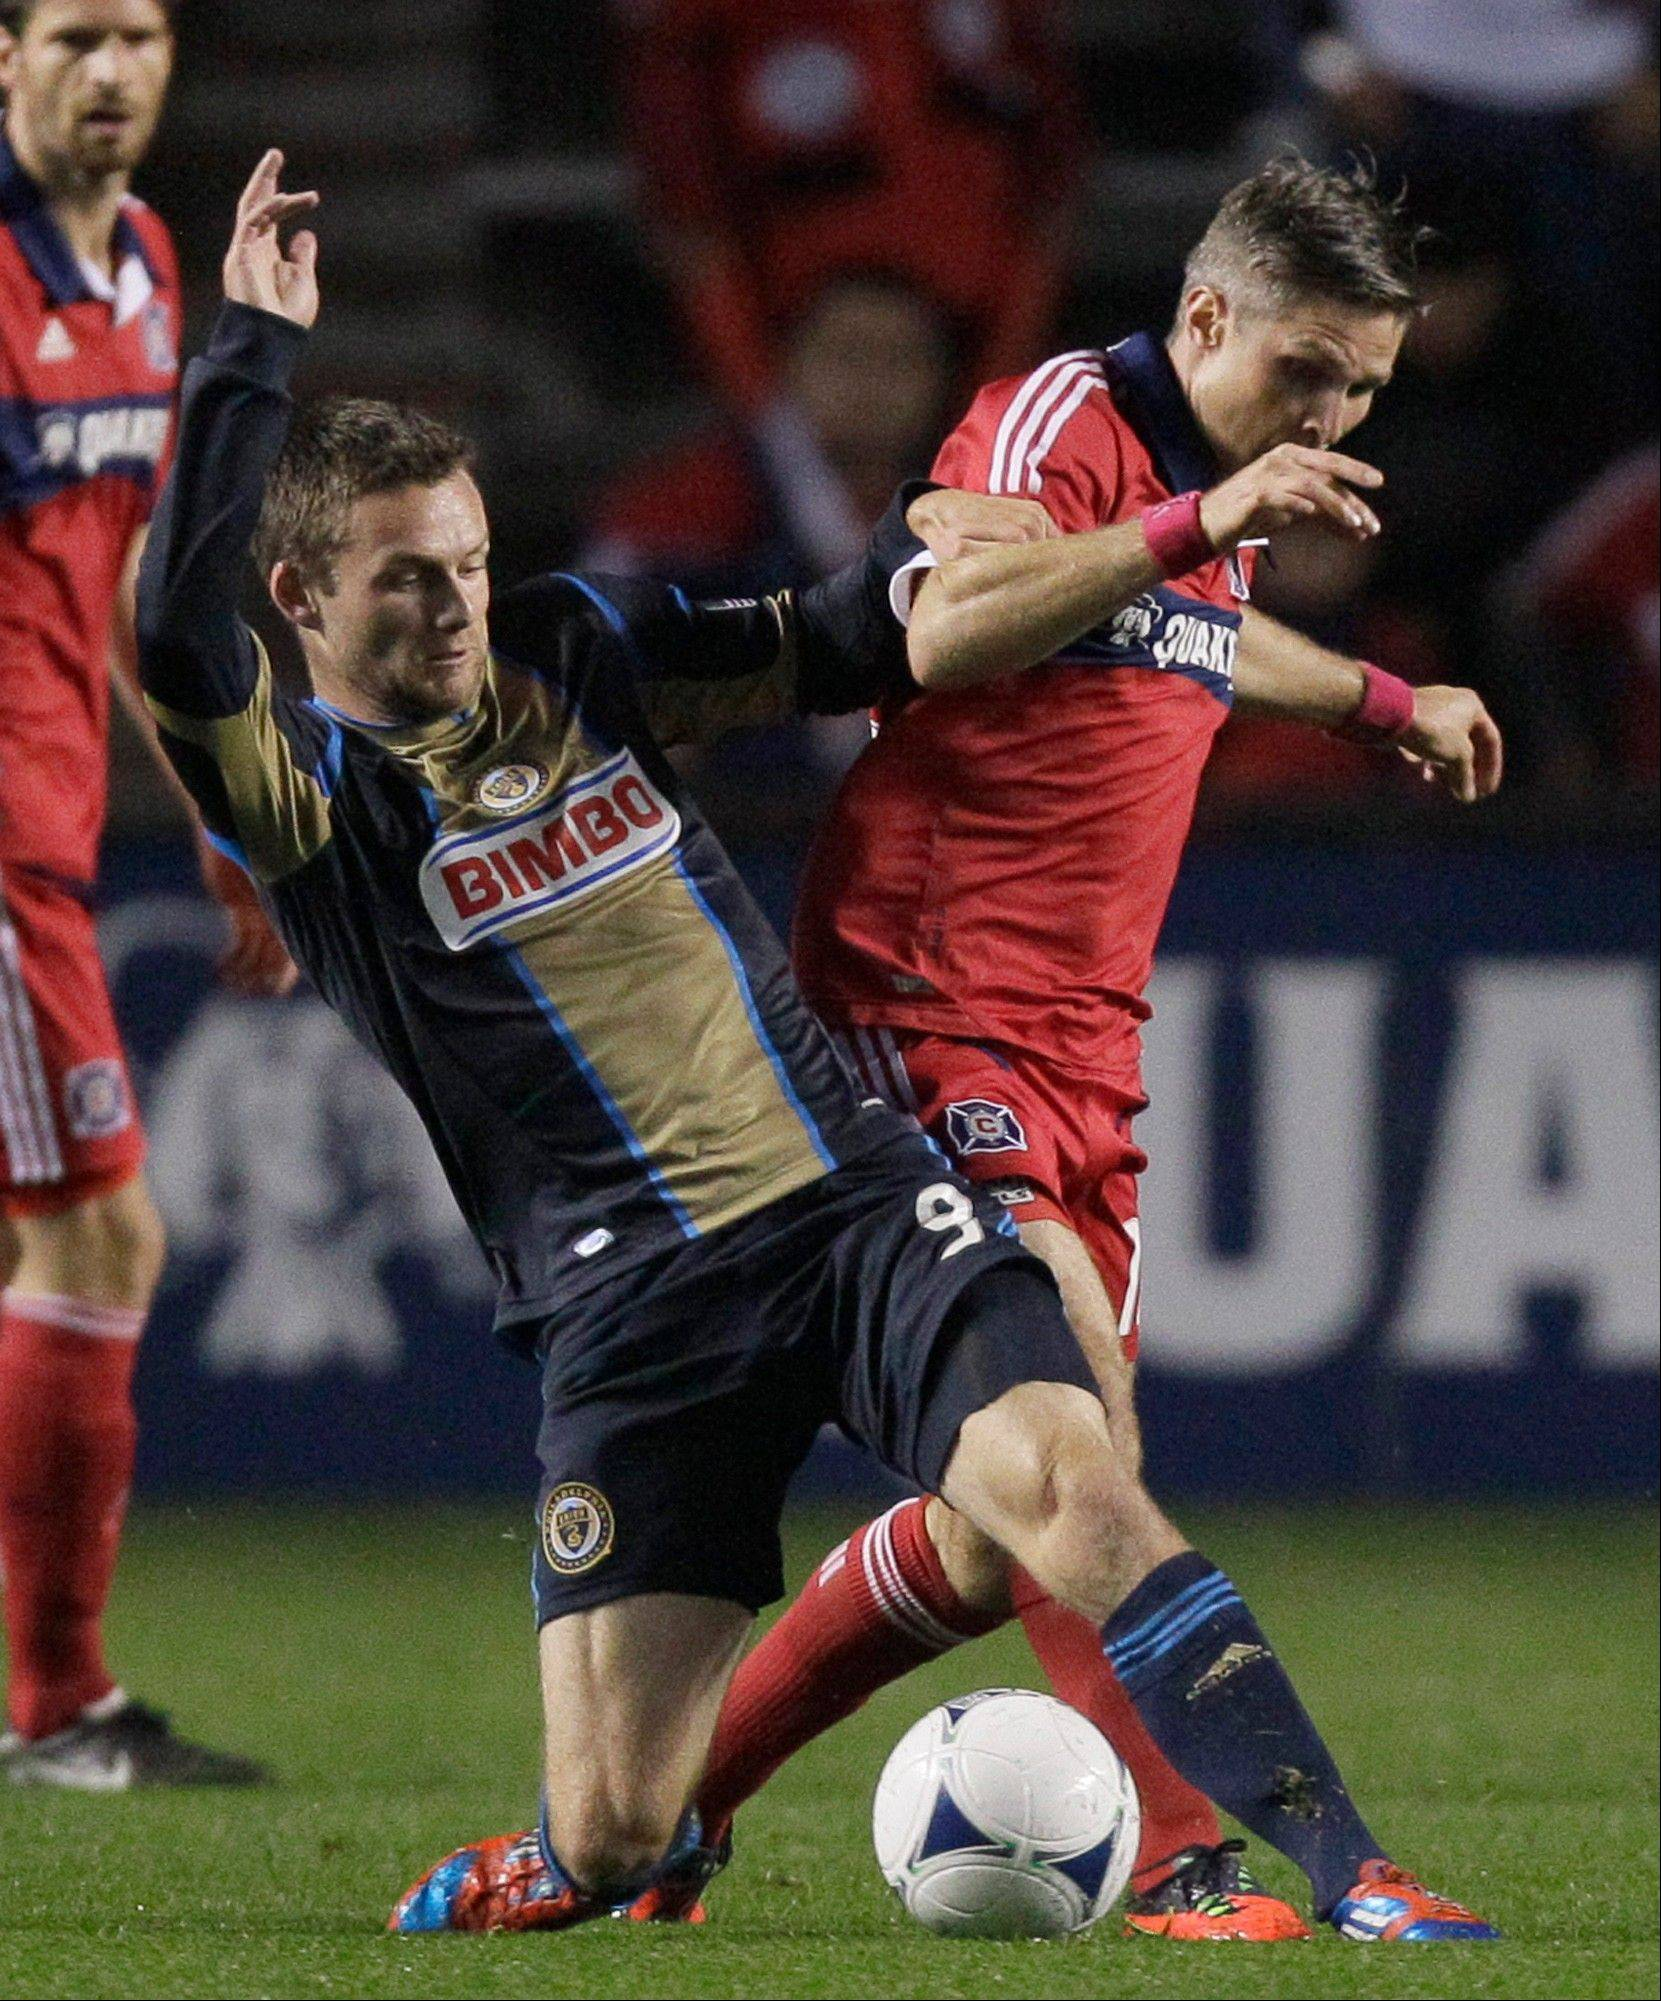 Chicago Fire officials declined to pick up the contract option for midfielder Logan Pause, right, for the 2014 season. The club could opt to bring him back under a new contract, however.